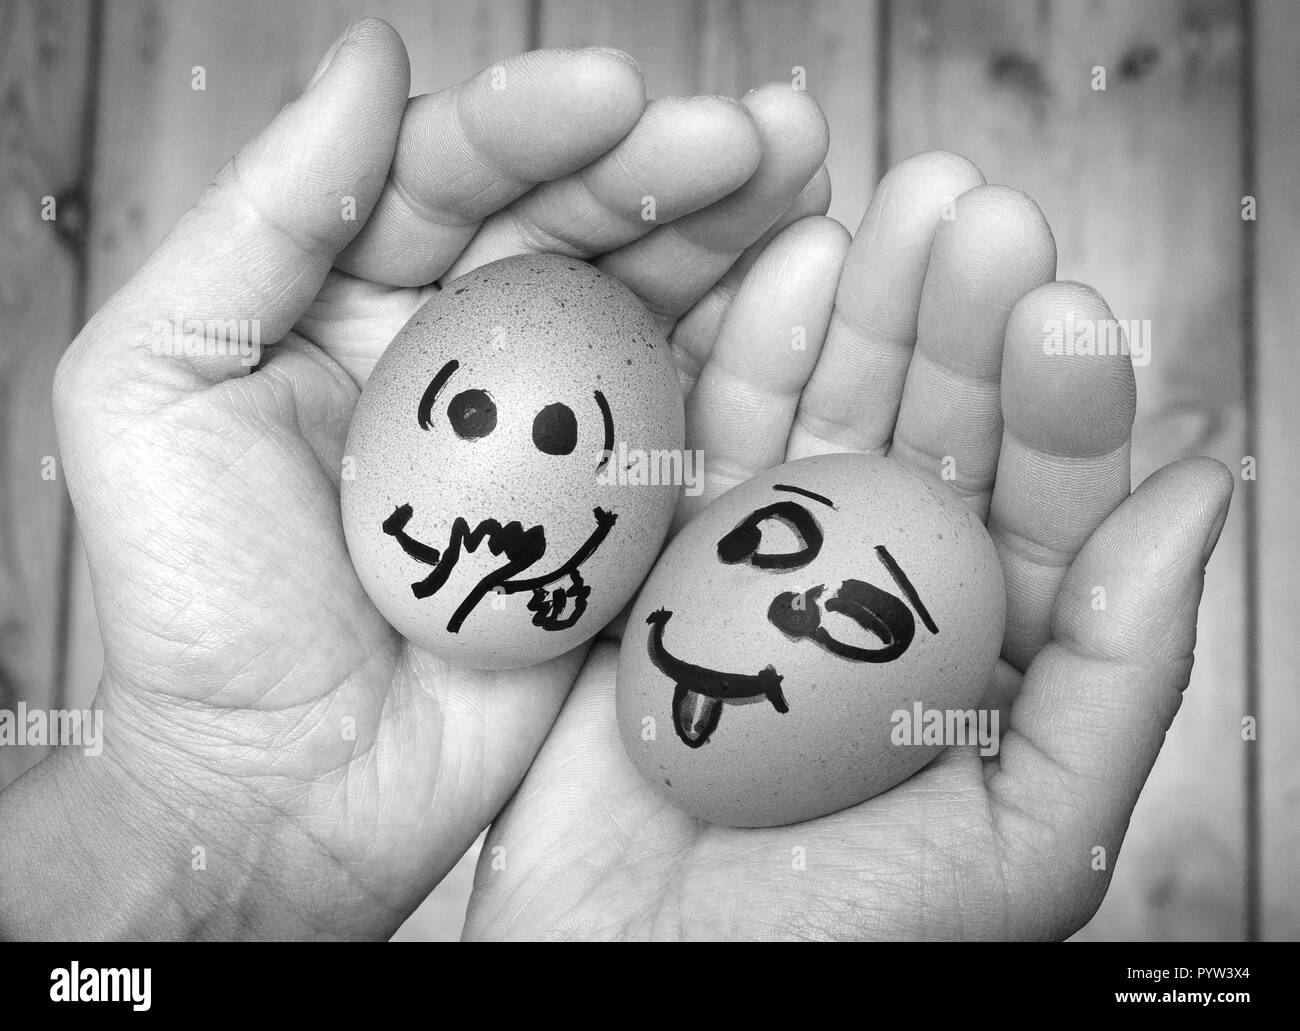 An egg staring lustfully, lecherously at another egg, both in female hands. Two eggs in love, being together, Eggs faces, drawnigs on eggs. - Stock Image